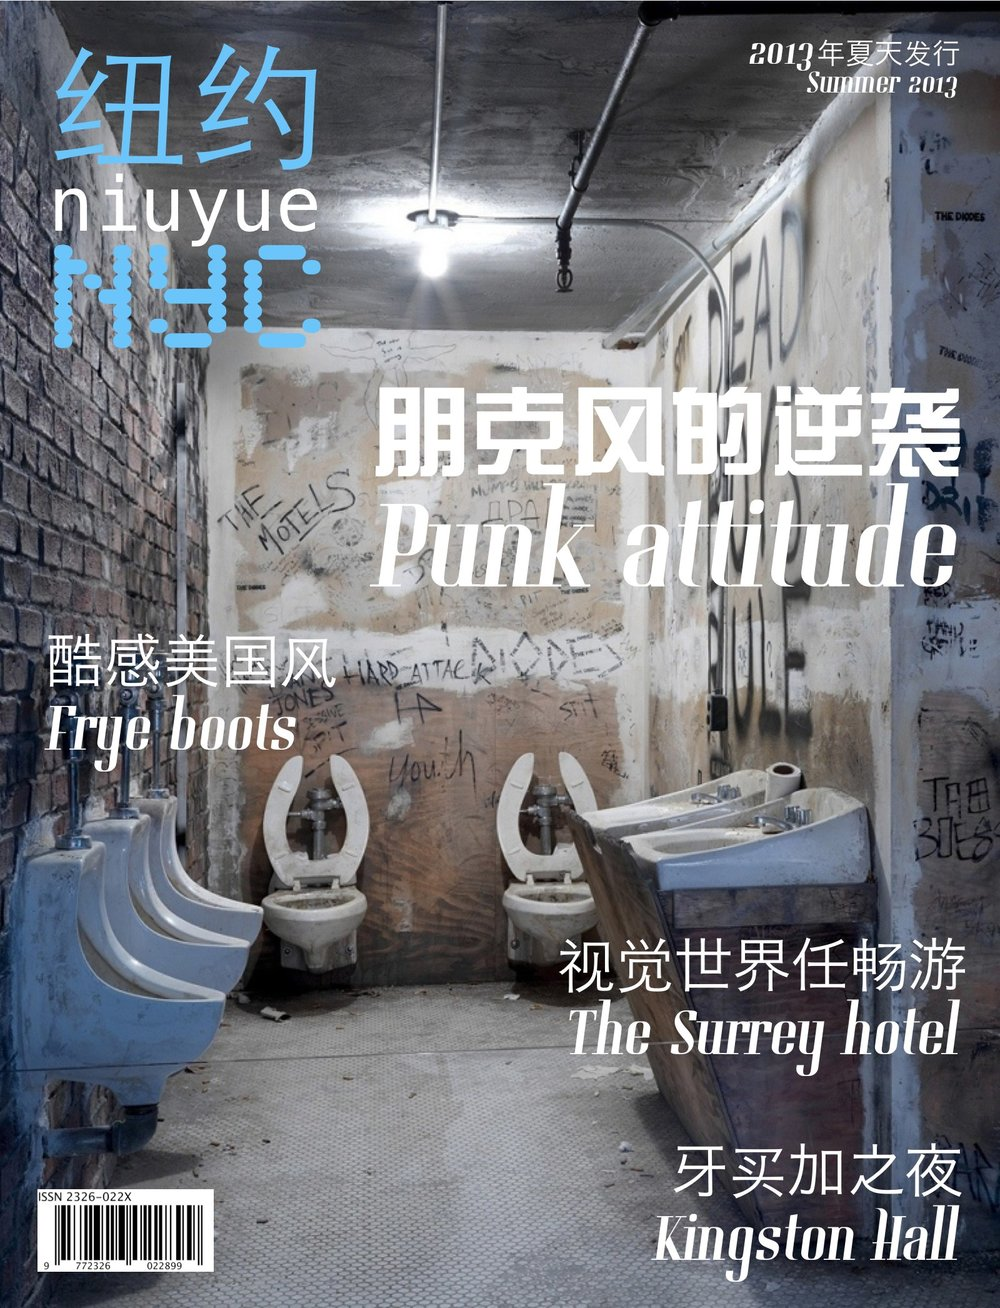 Niuyue Mag Summer 2013 cover - Legit Productions.jpg